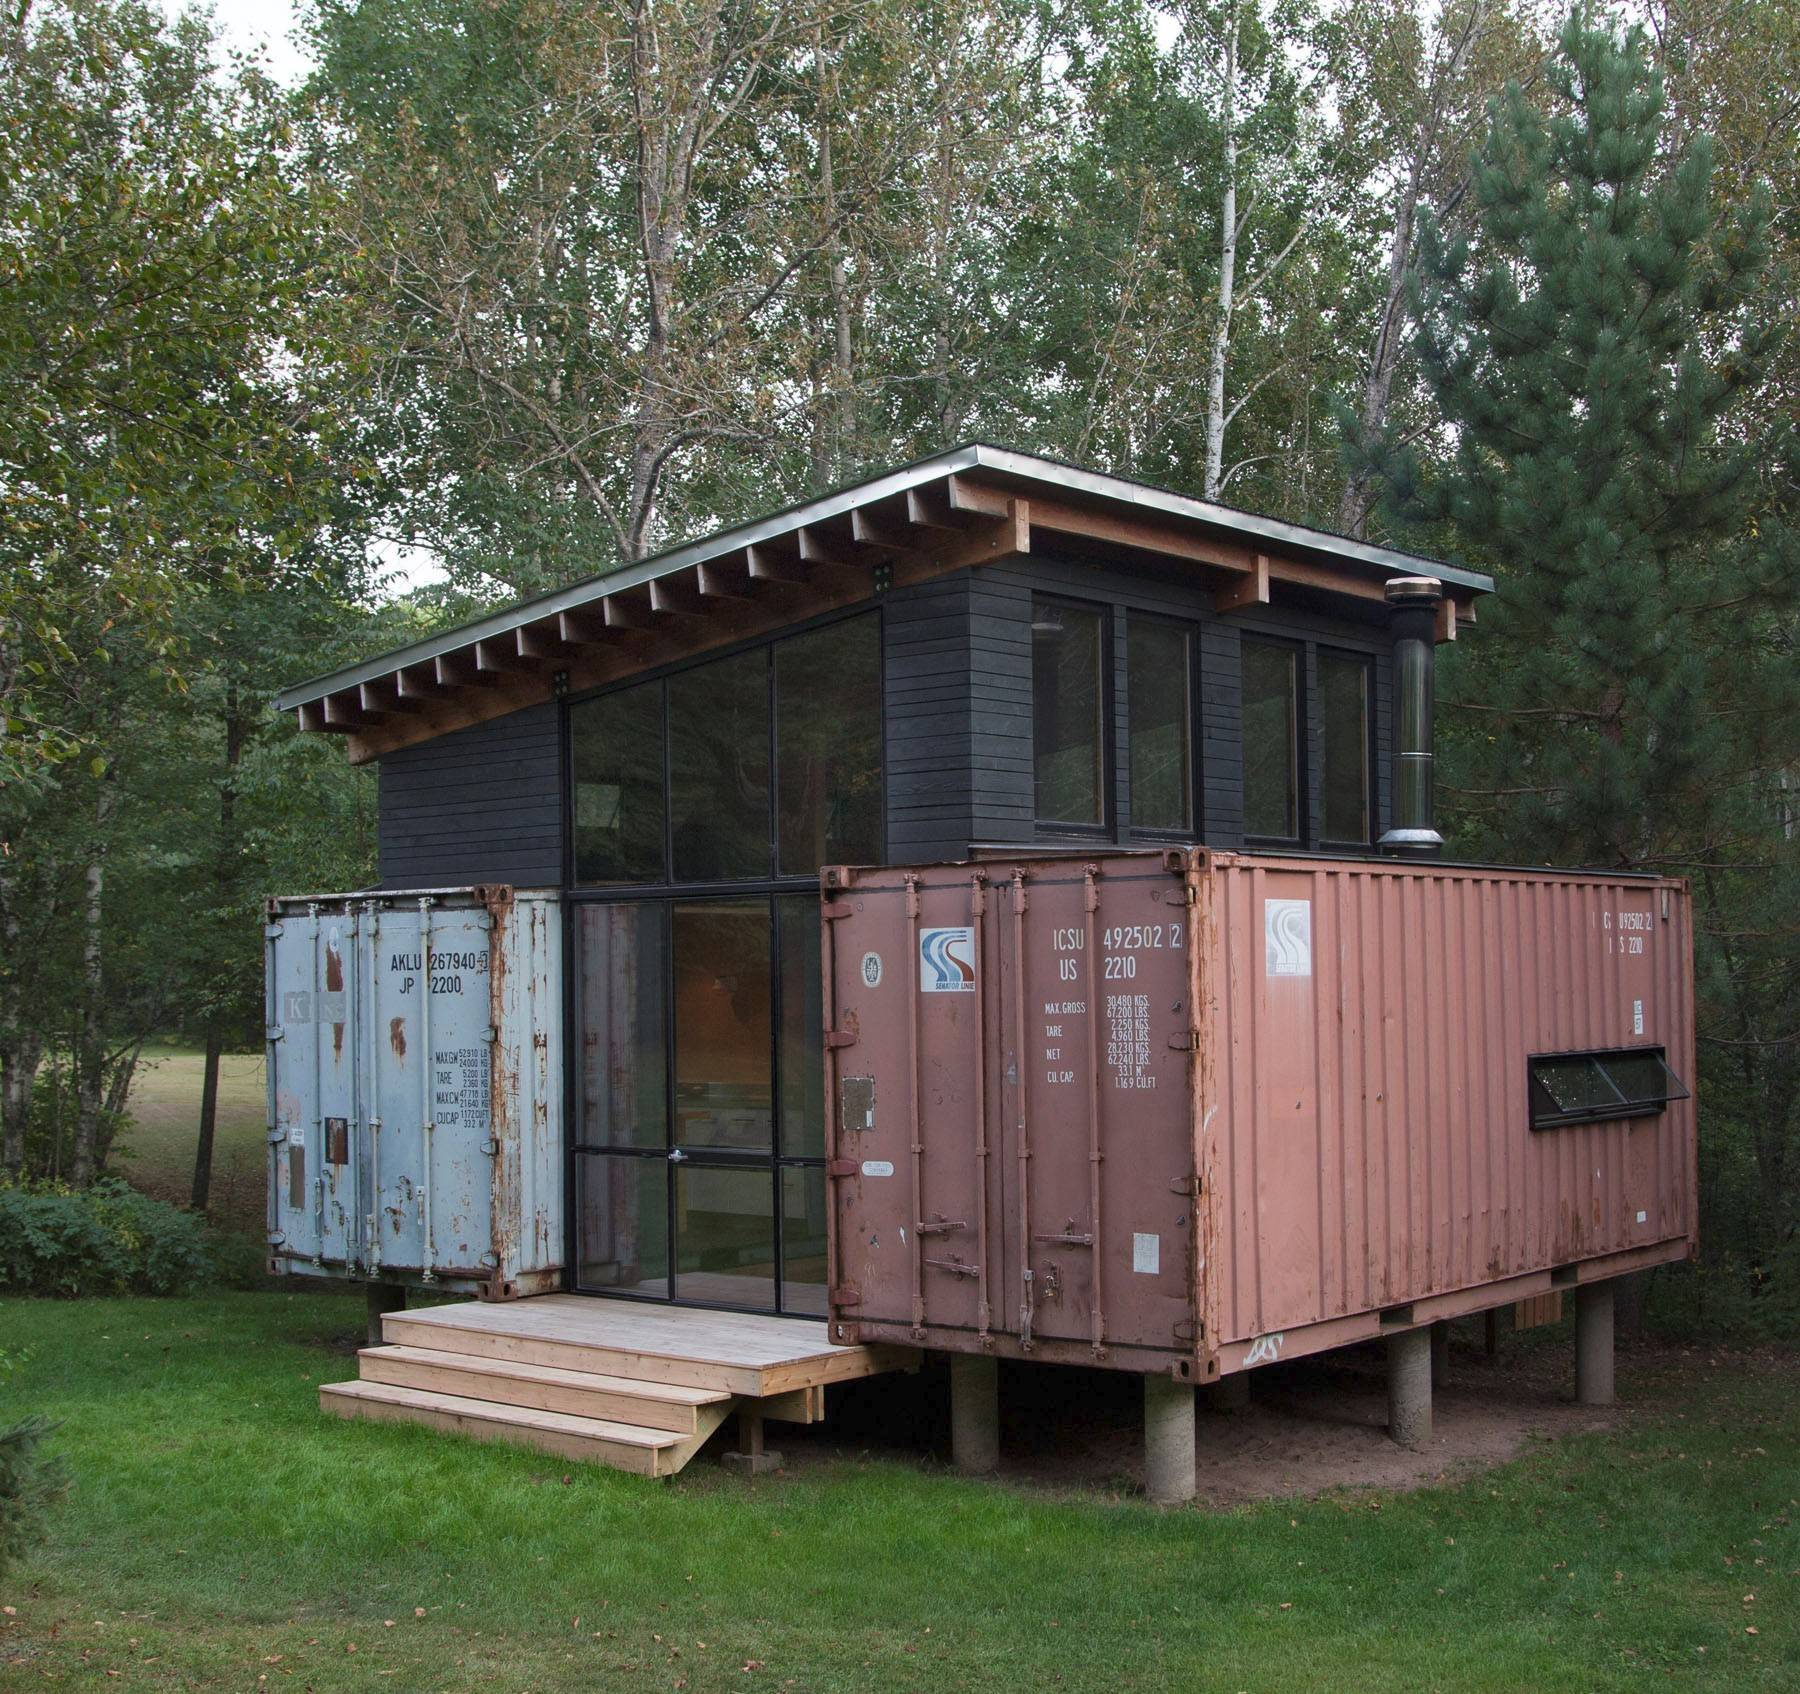 Brothers Paul and Scott Stankey chose the humble shipping container to replace a decrepit trailer on family vacation property two hours north of Minneapolis.